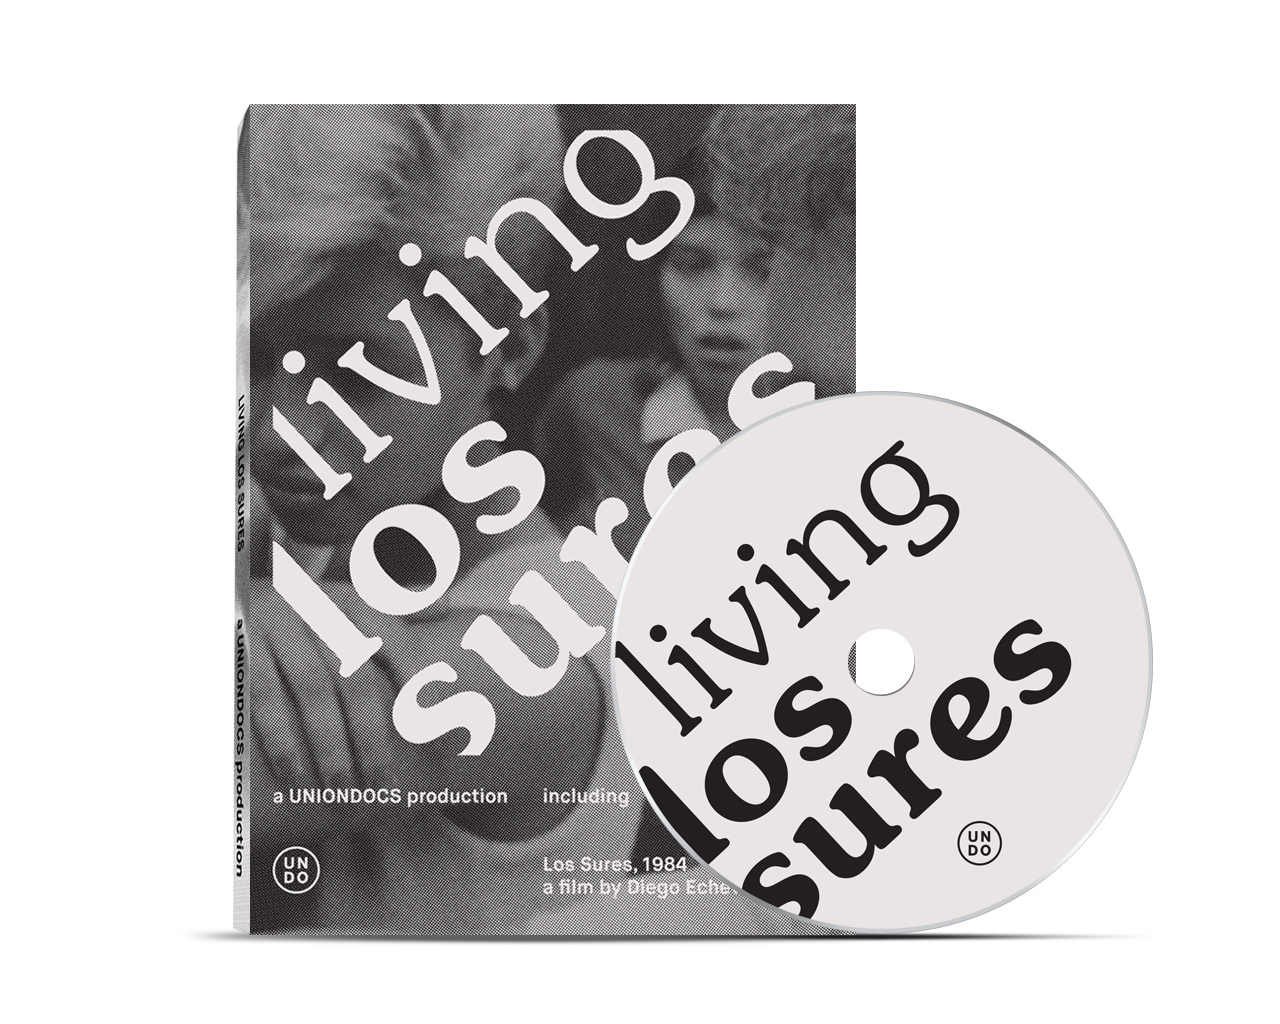 Living-Los-Sures-Dvd-and-Case